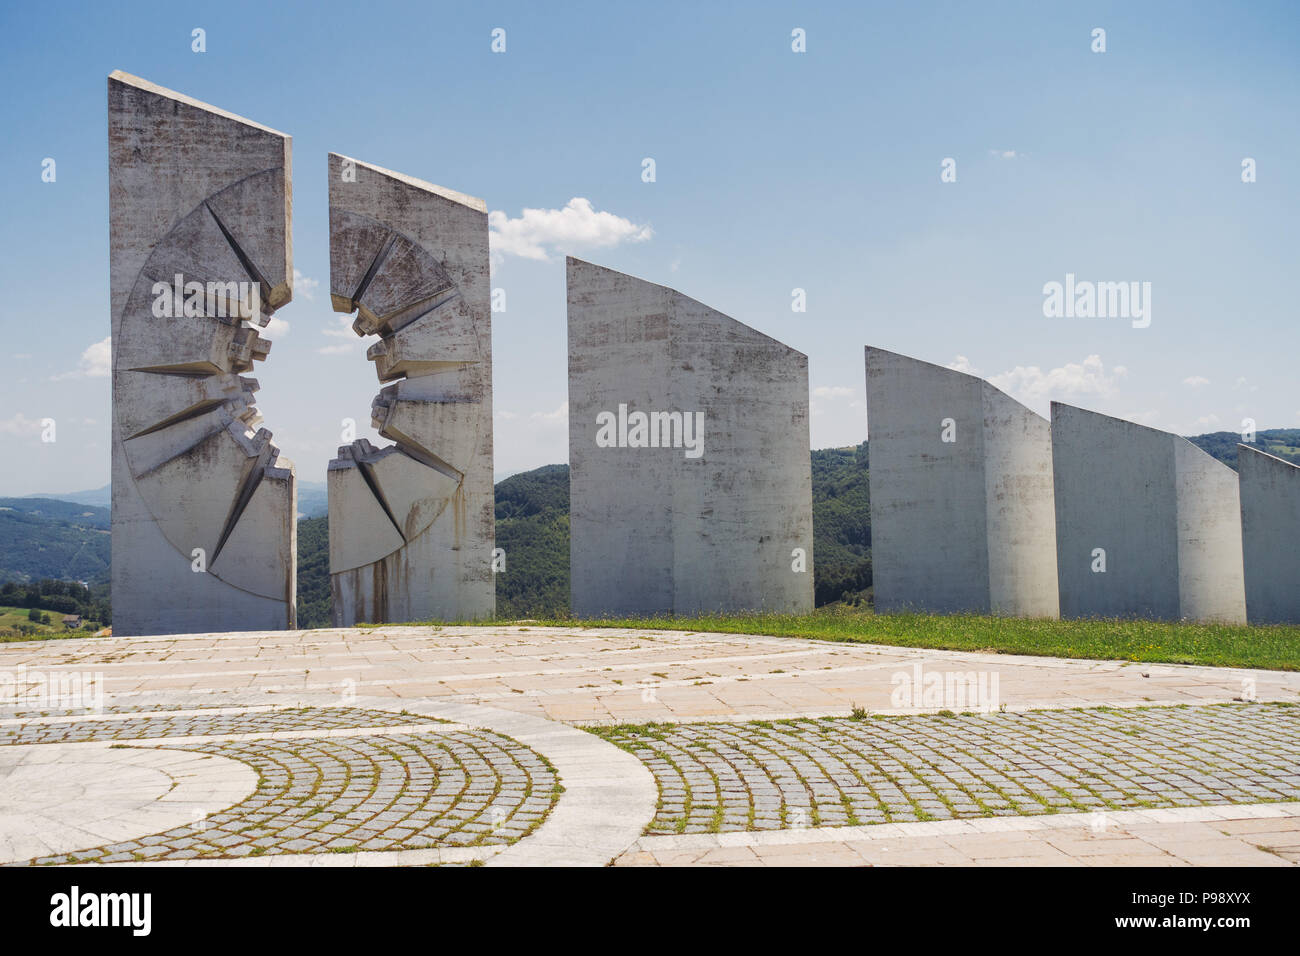 the sweeping white concrete slabs commemorating fallen Partisan fighters at the Kadinjača Memorial Complex, Serbia Stock Photo